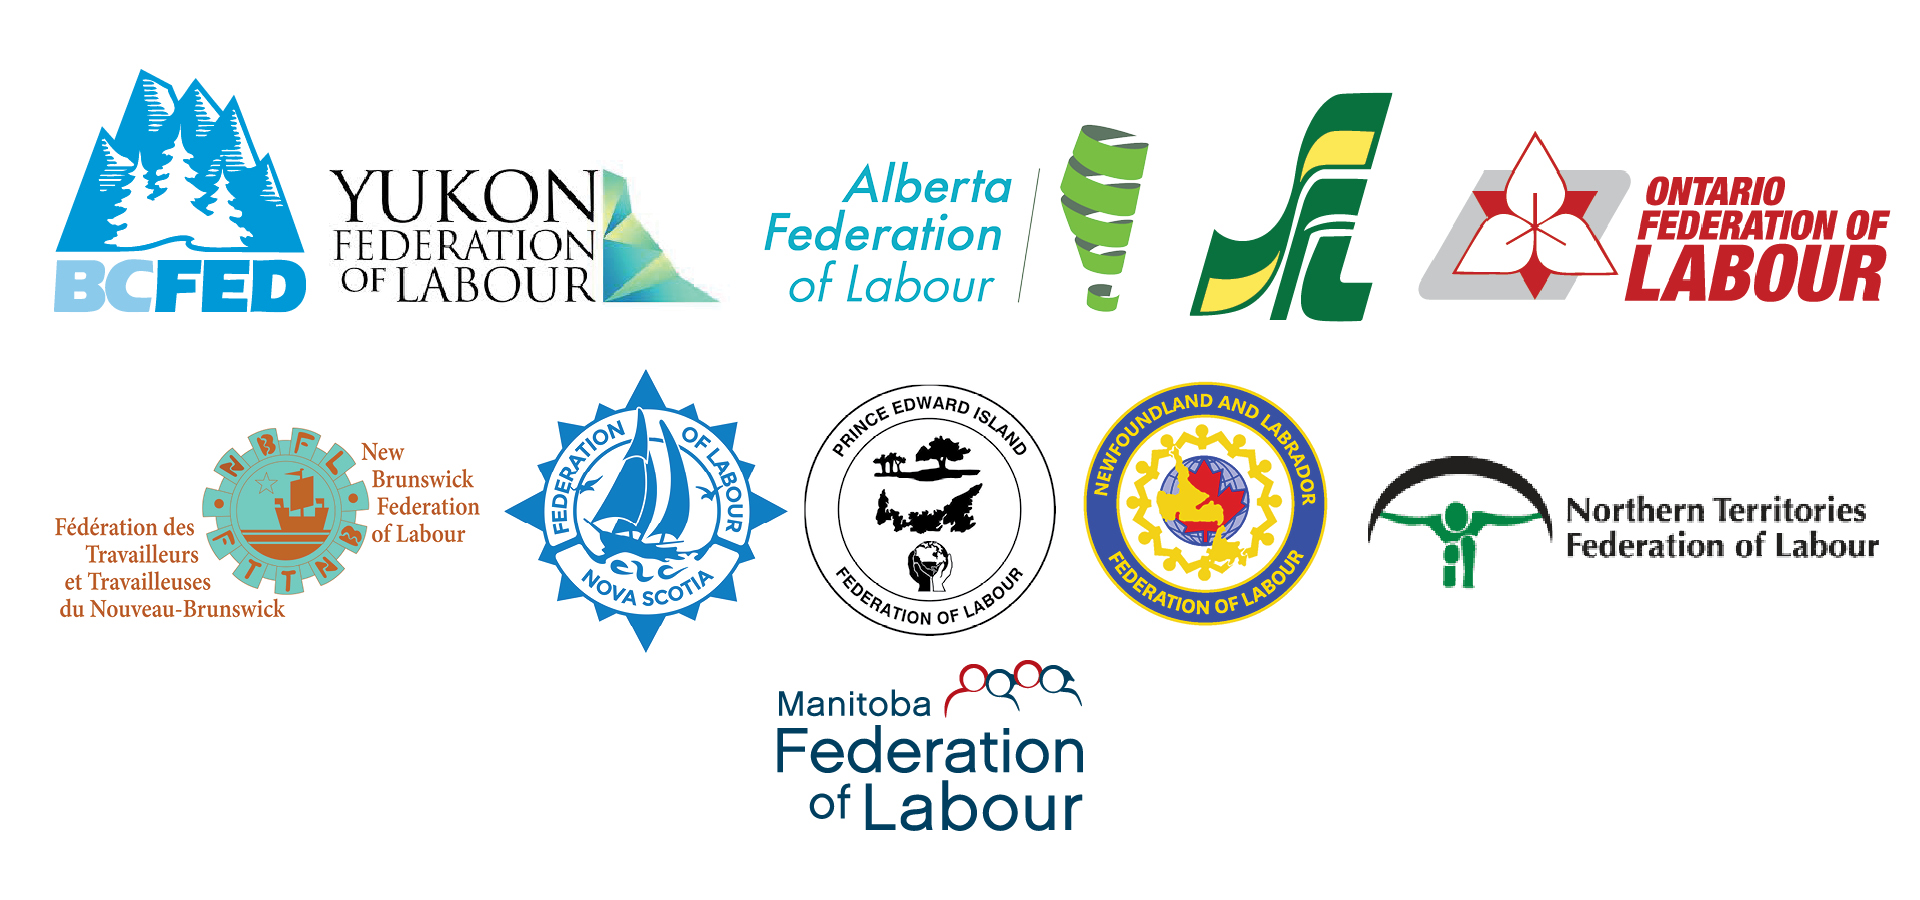 Canada¡¯s provincial and territorial federations of labour